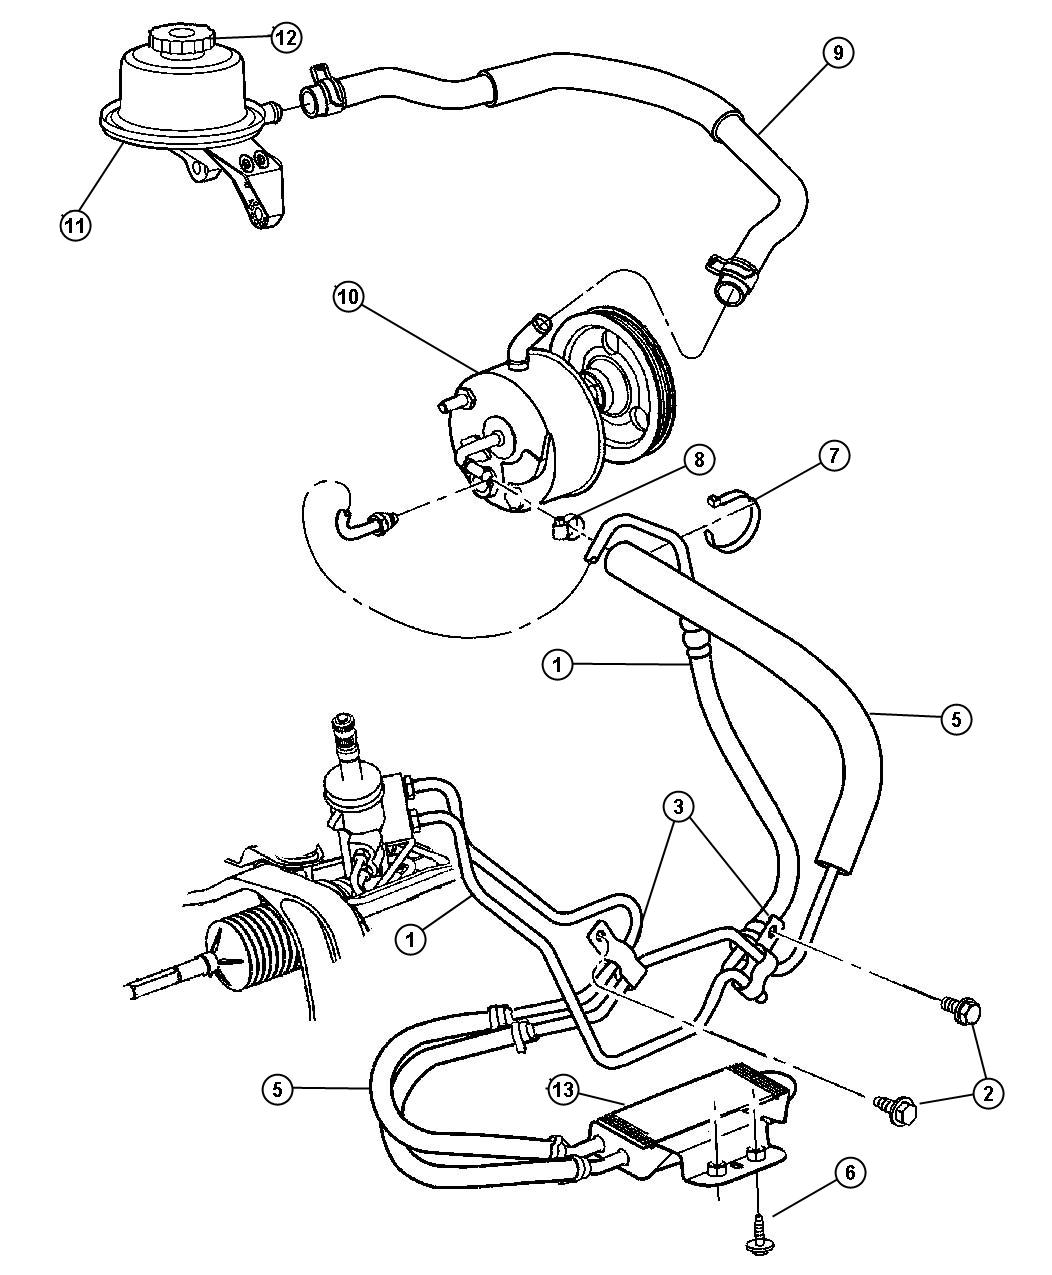 Dodge Dakota Steering Parts Diagram Free Engine Image For User Manual Download